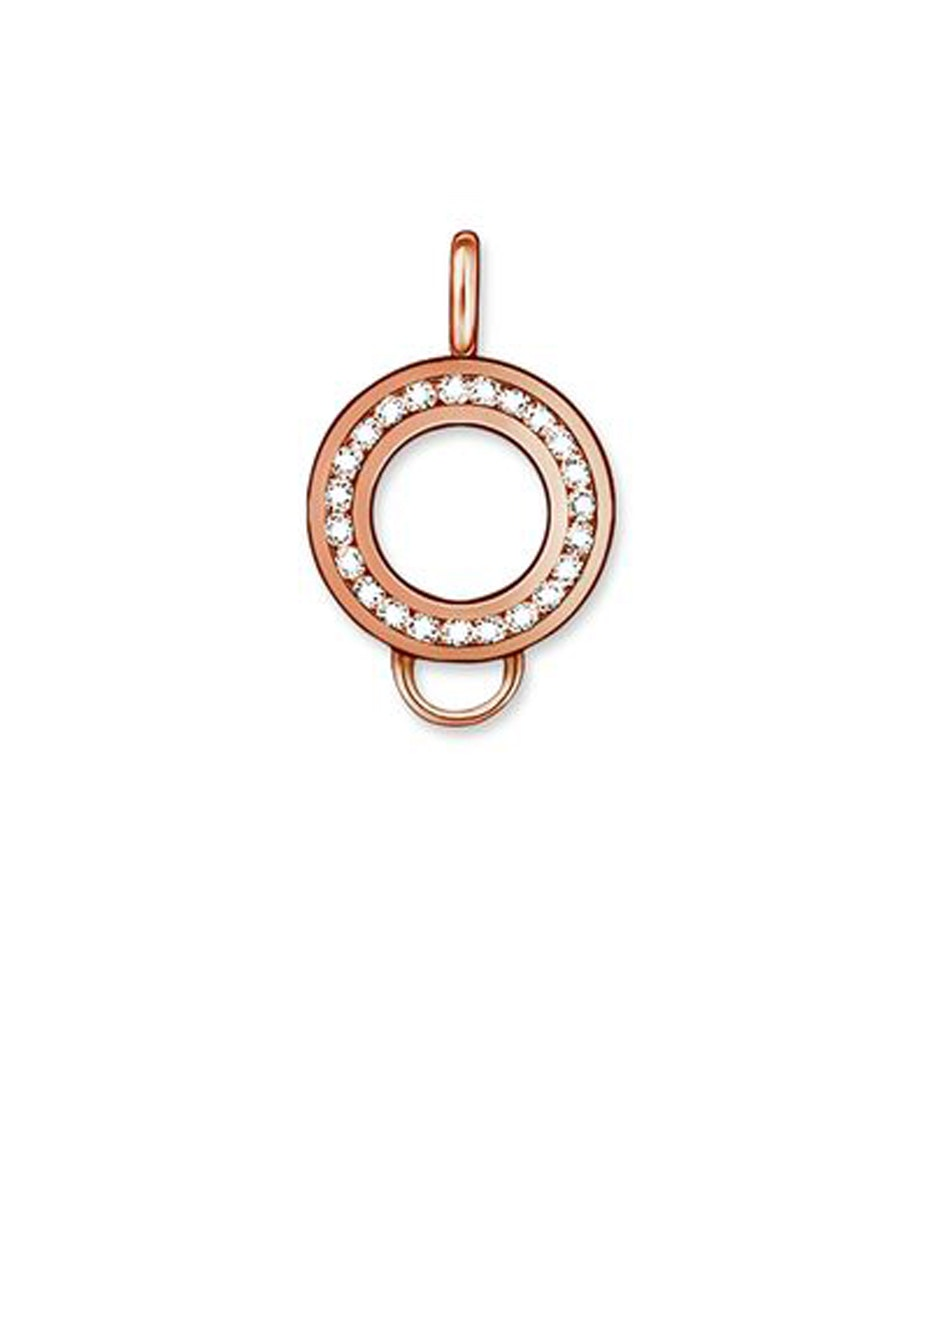 Thomas Sabo  - Charm Club - Rose Gold Plate & Cz Carrier